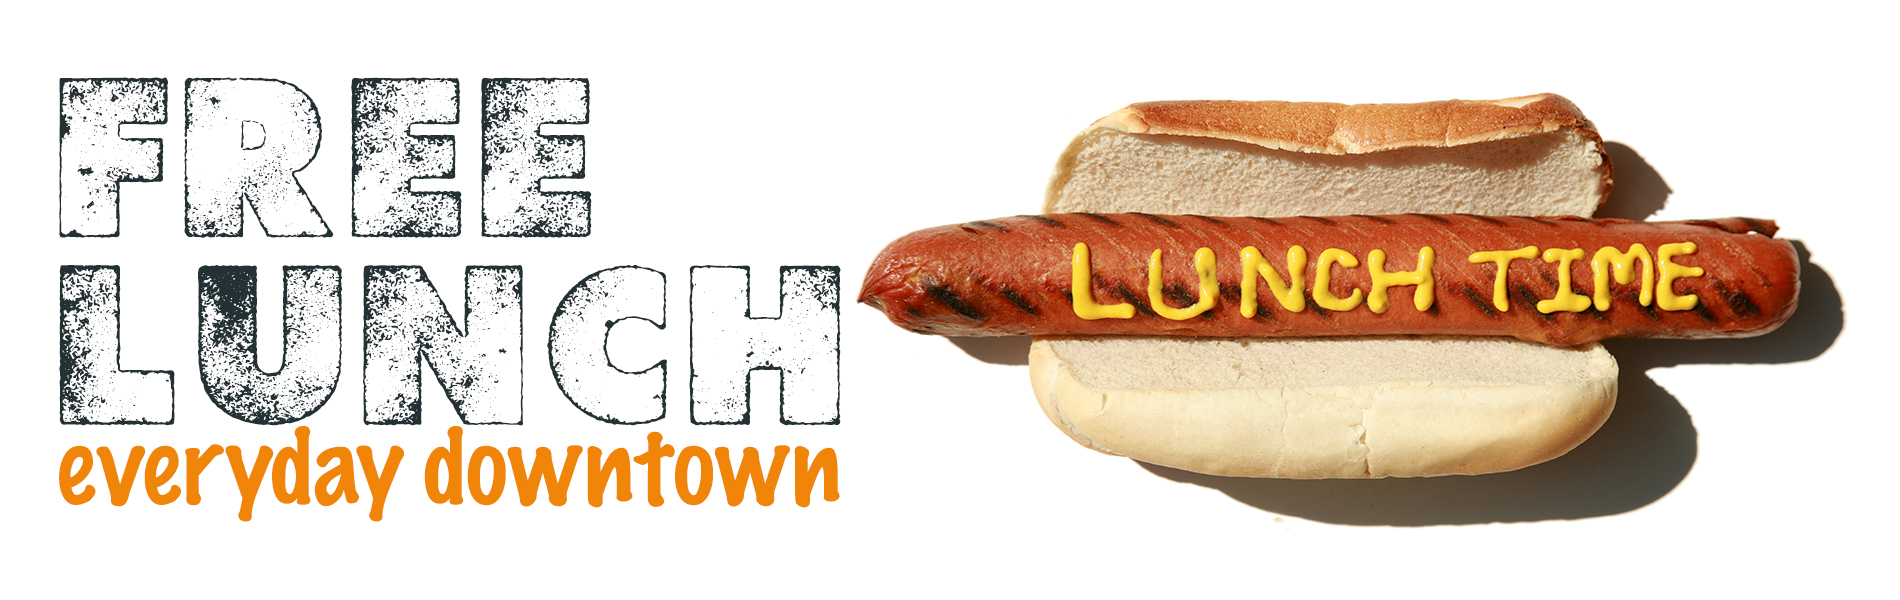 FREE Hot Dog Lunch